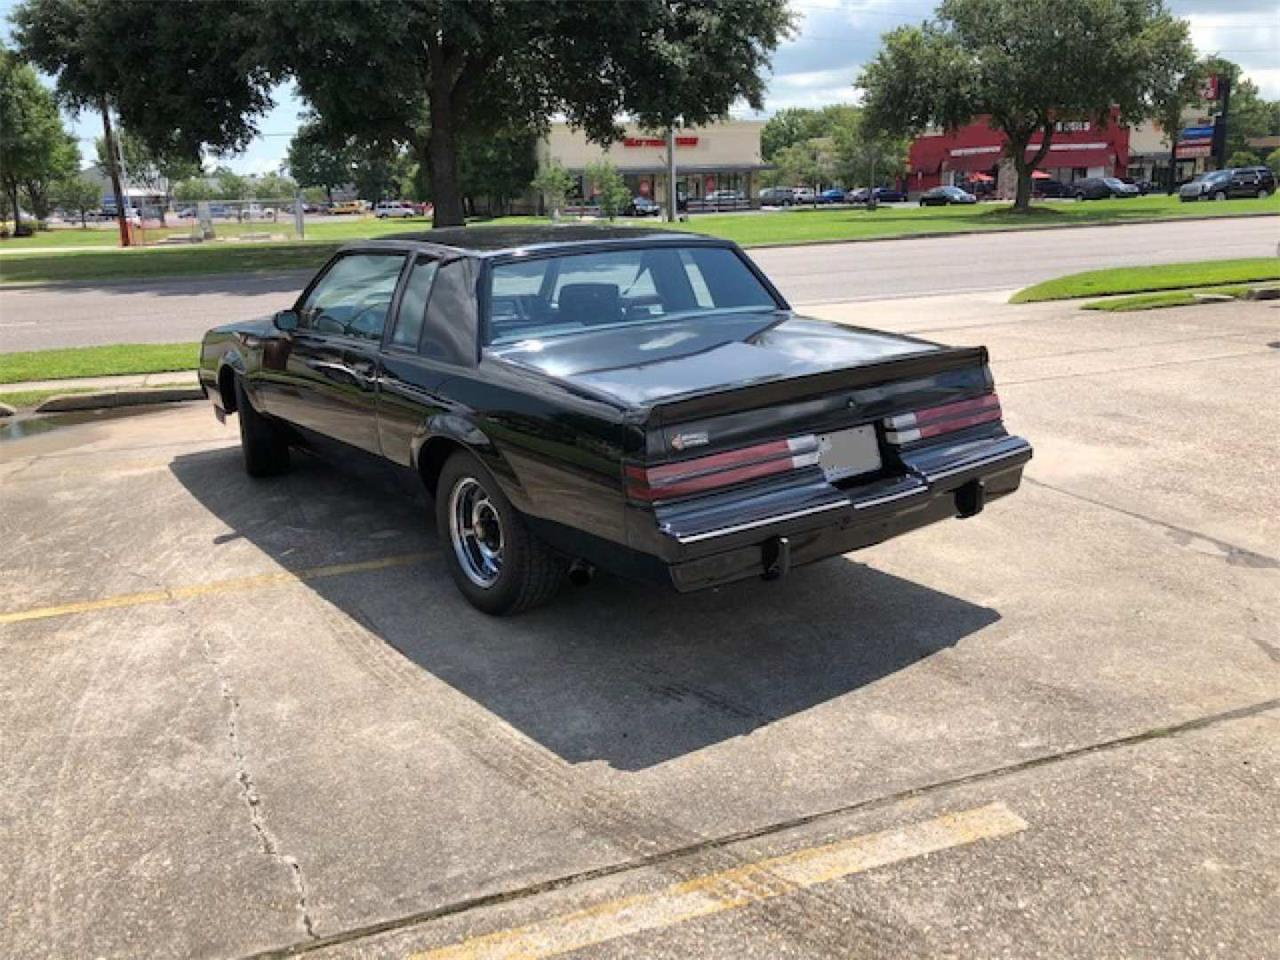 1987 Buick Grand National (CC-1252329) for sale in Biloxi, Mississippi